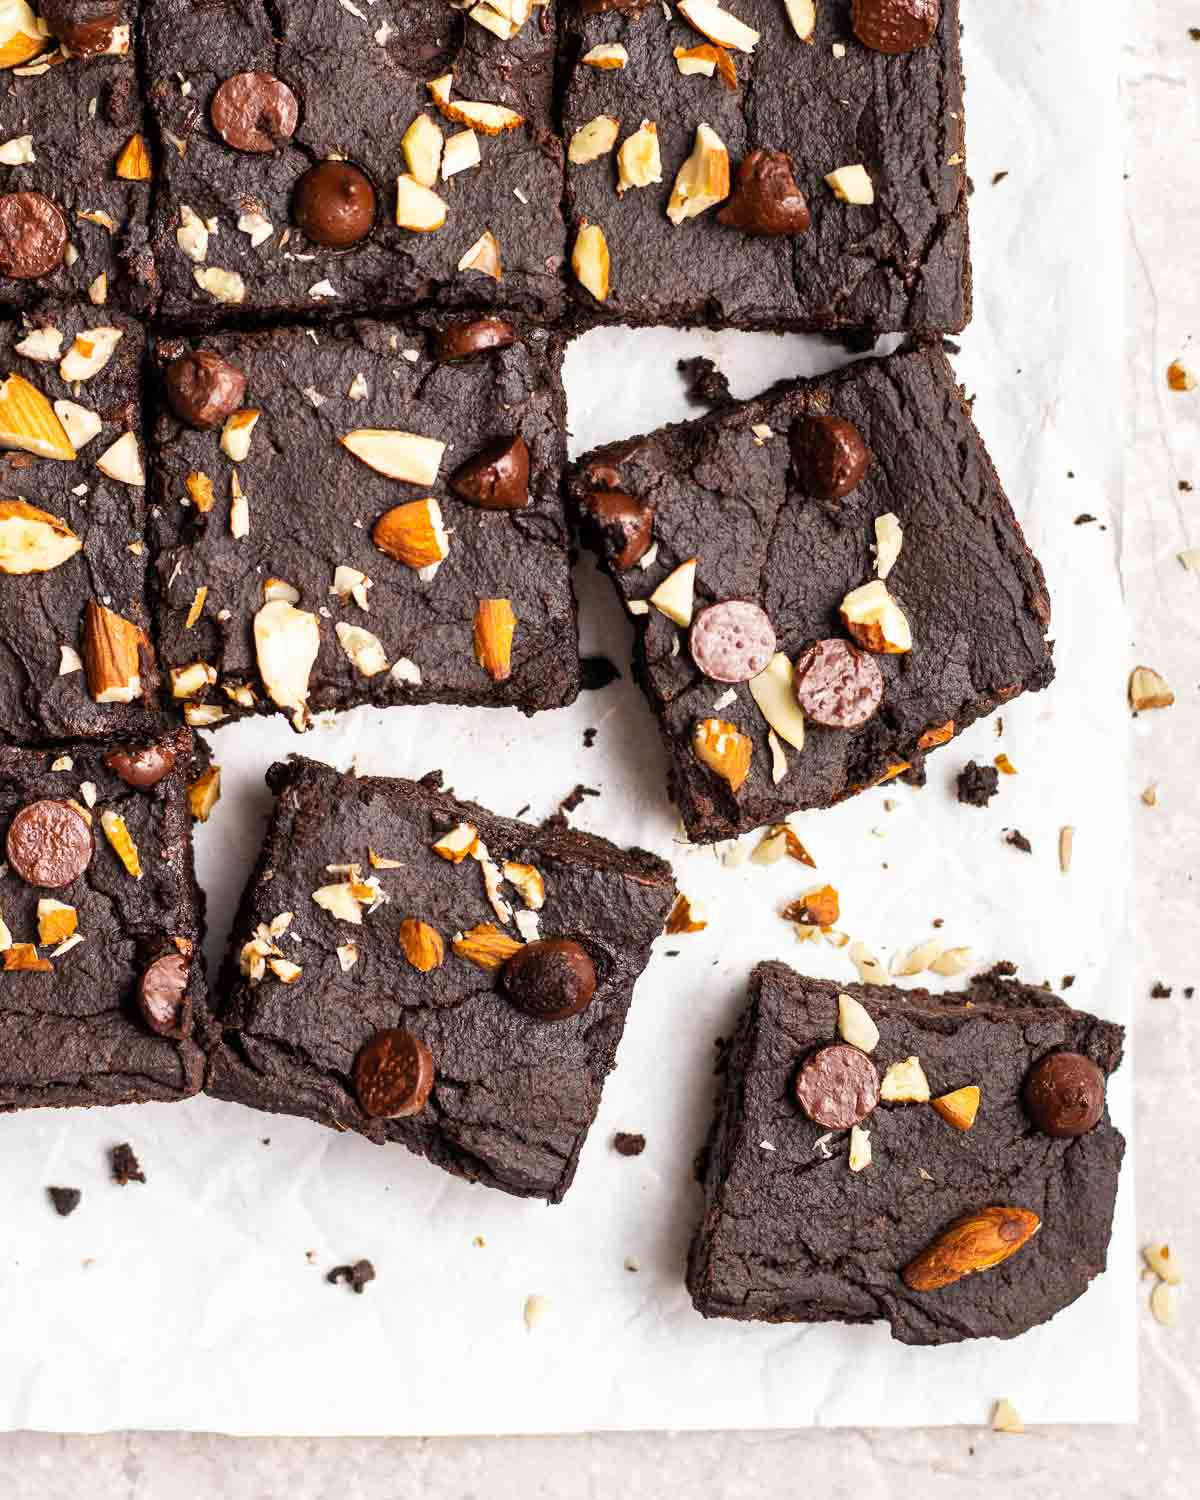 A tray of brownies on a parchment paper topped with chopped almonds and chocolate chips.